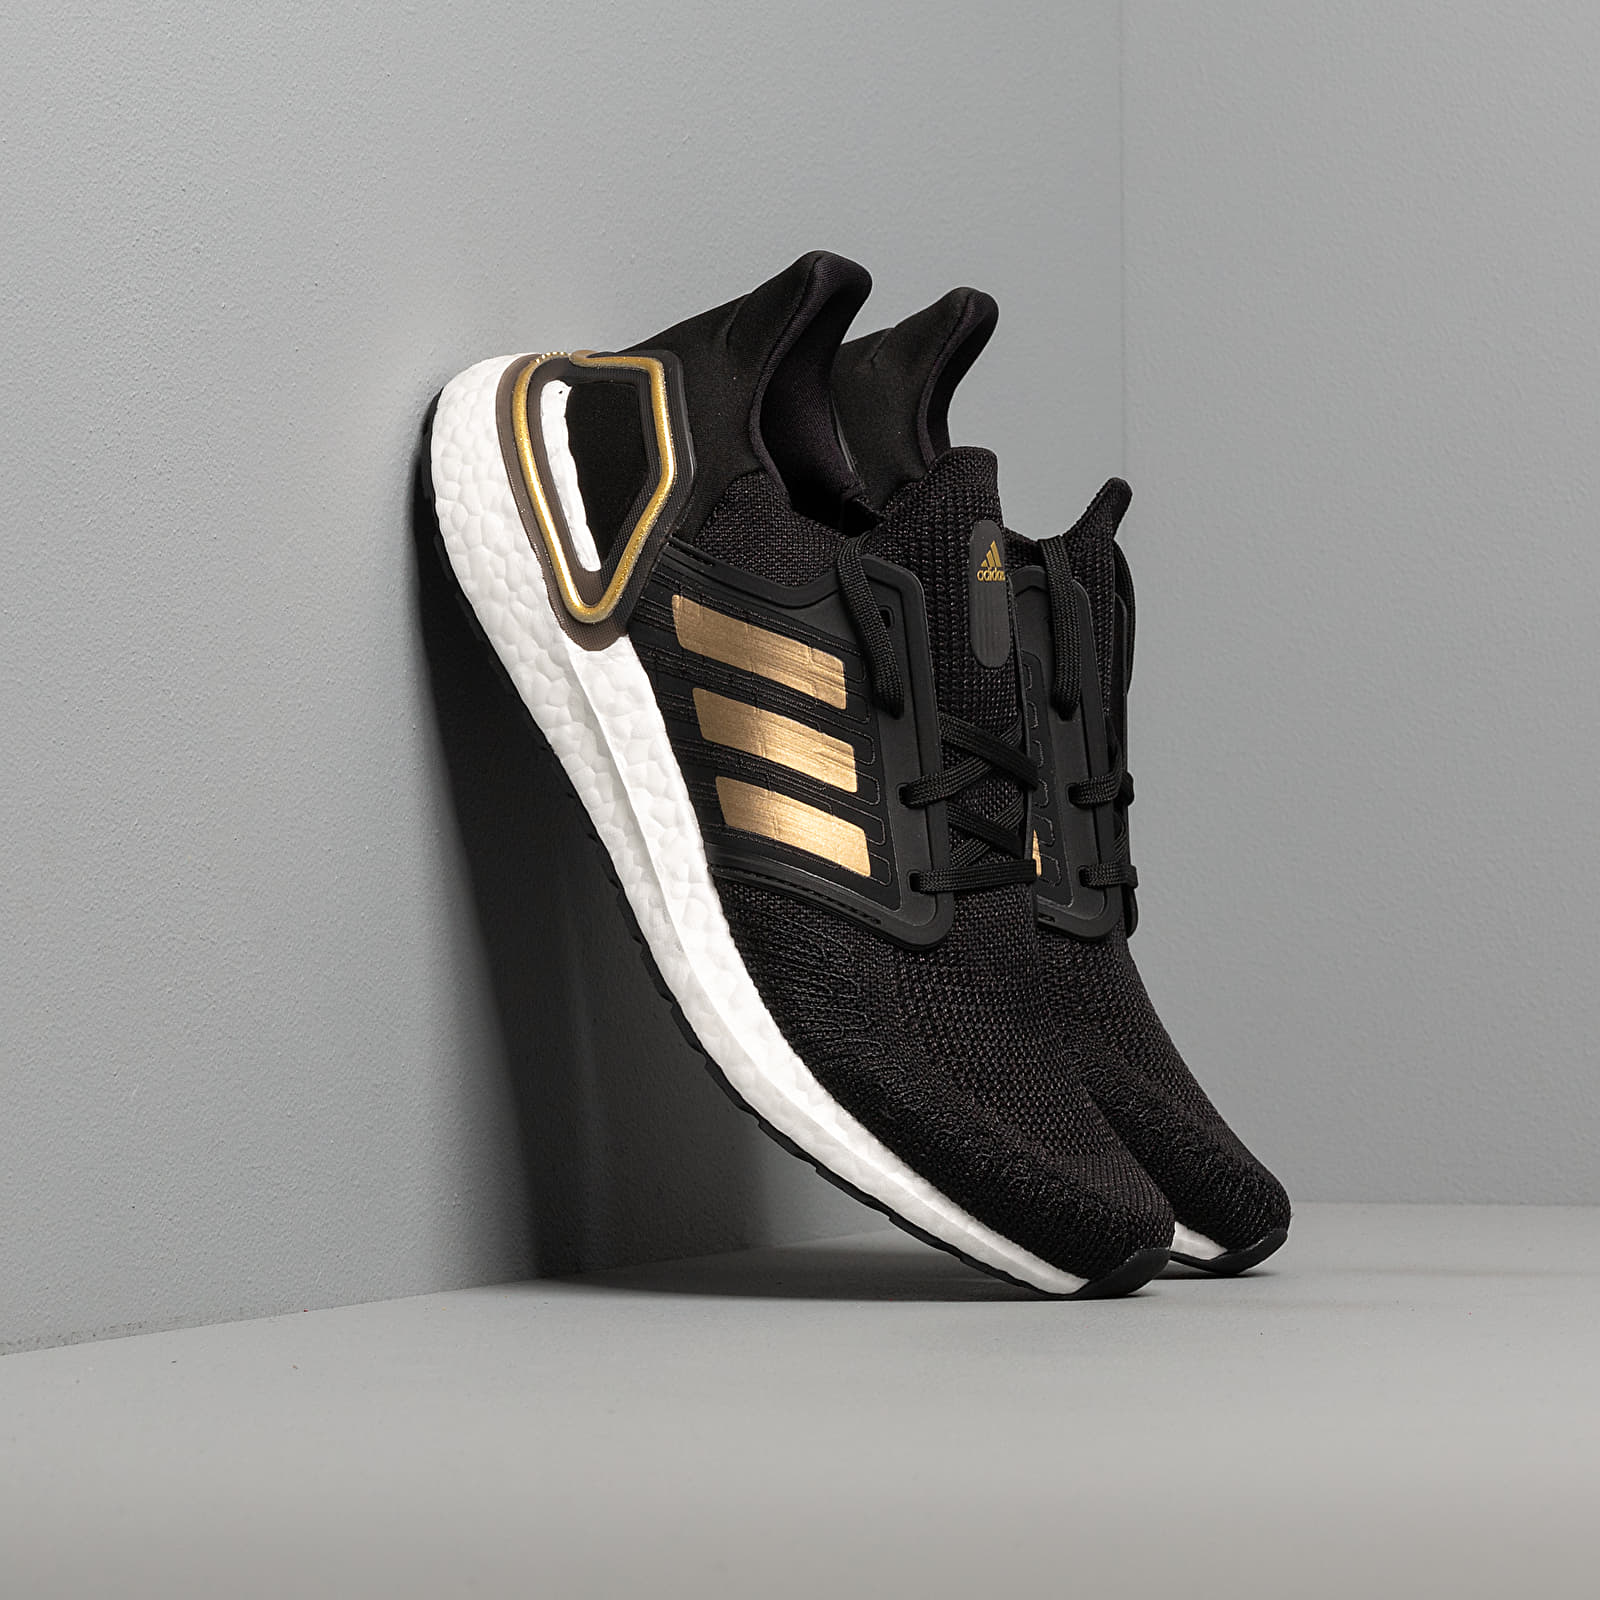 Men's shoes adidas UltraBOOST 20 Core Black/ Gold Metalic/ Solid Red